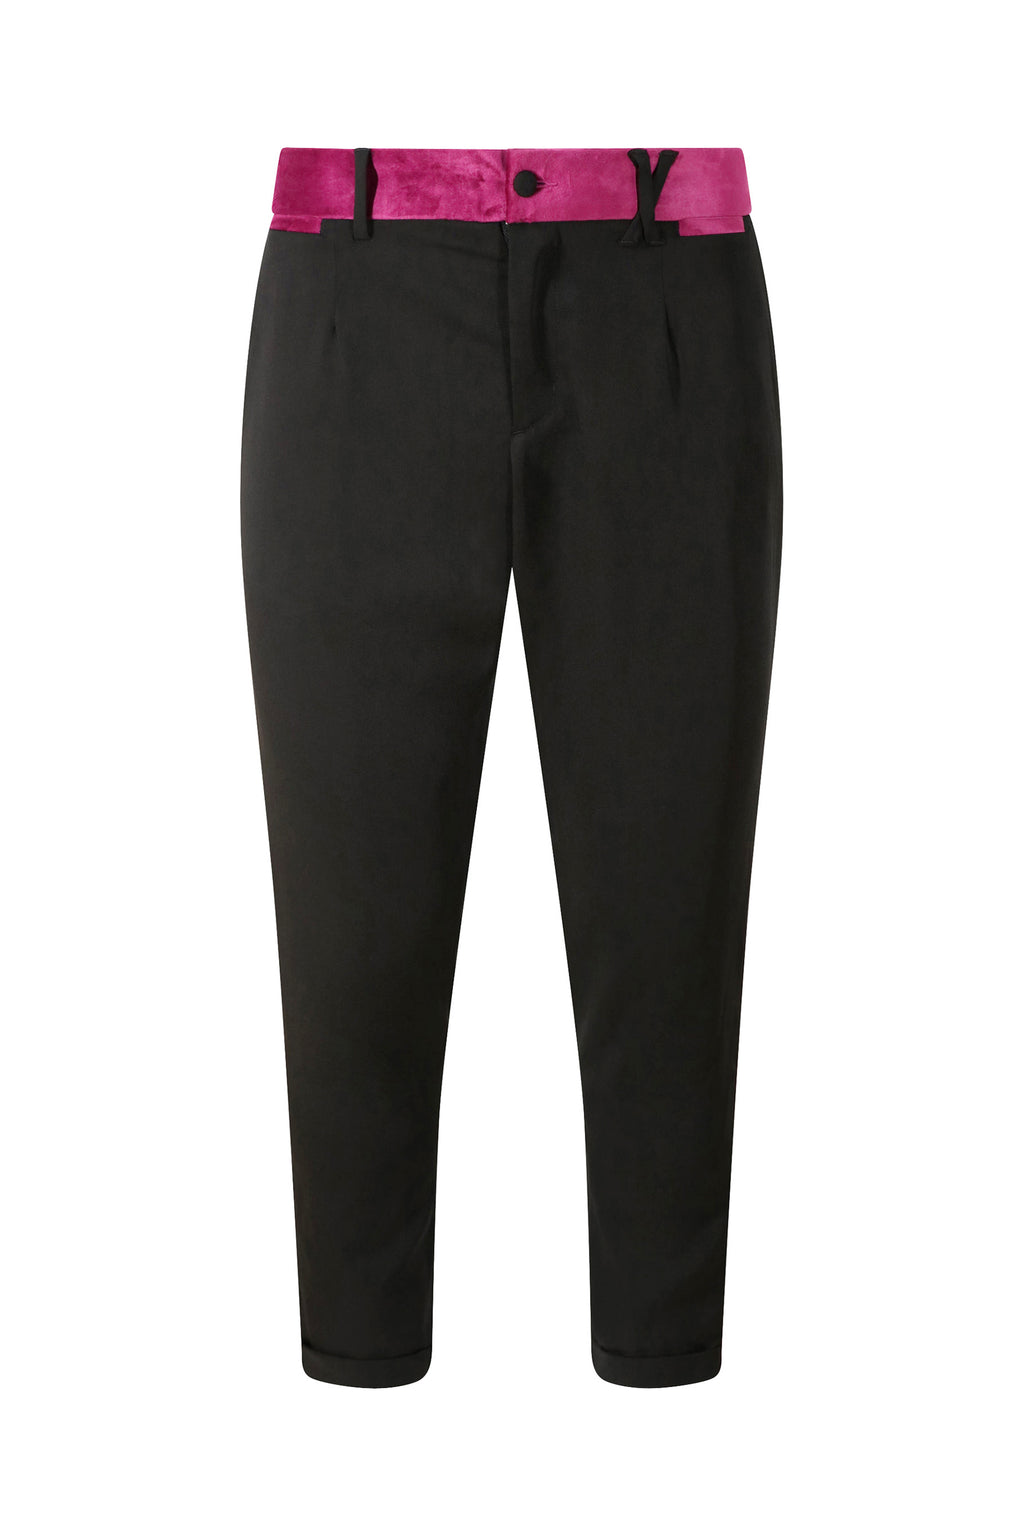 Unisex Tuxedo Trousers with Purple Velvet Stripe